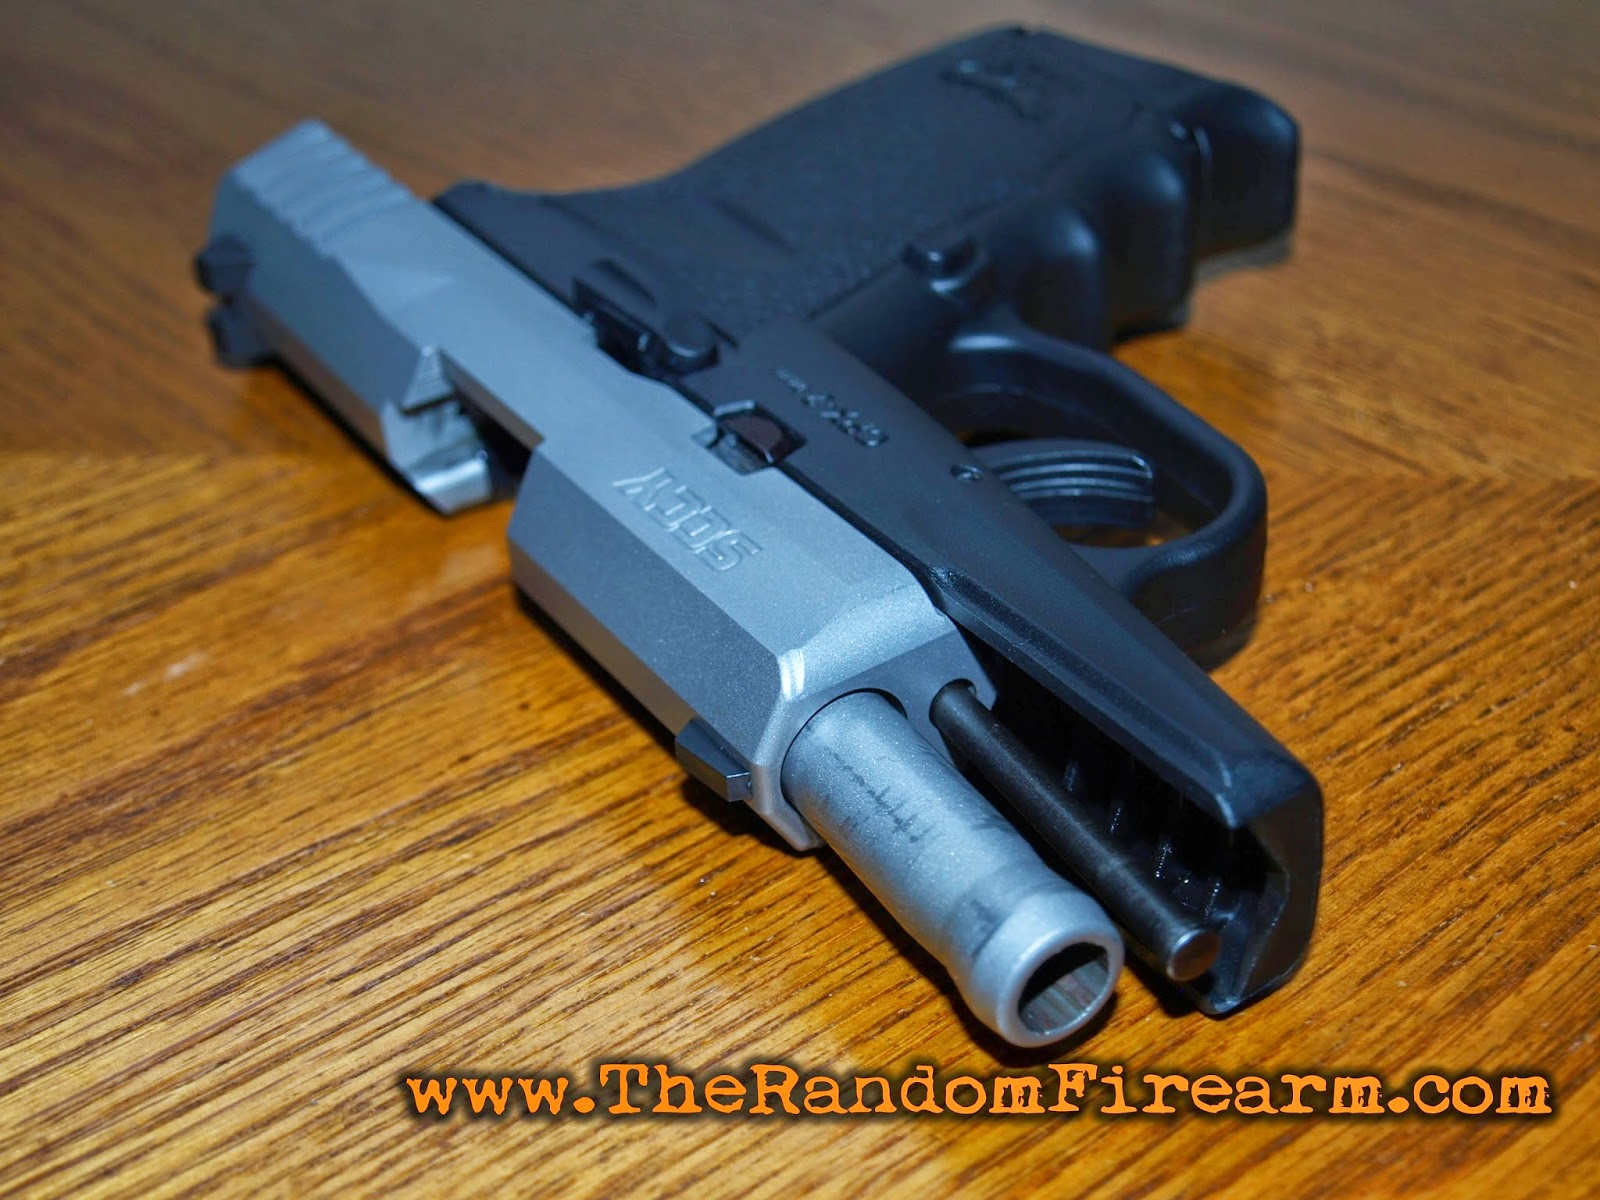 sccy cpx2 review warranty service no questions asked compact 9mm handgun pistol baseplate